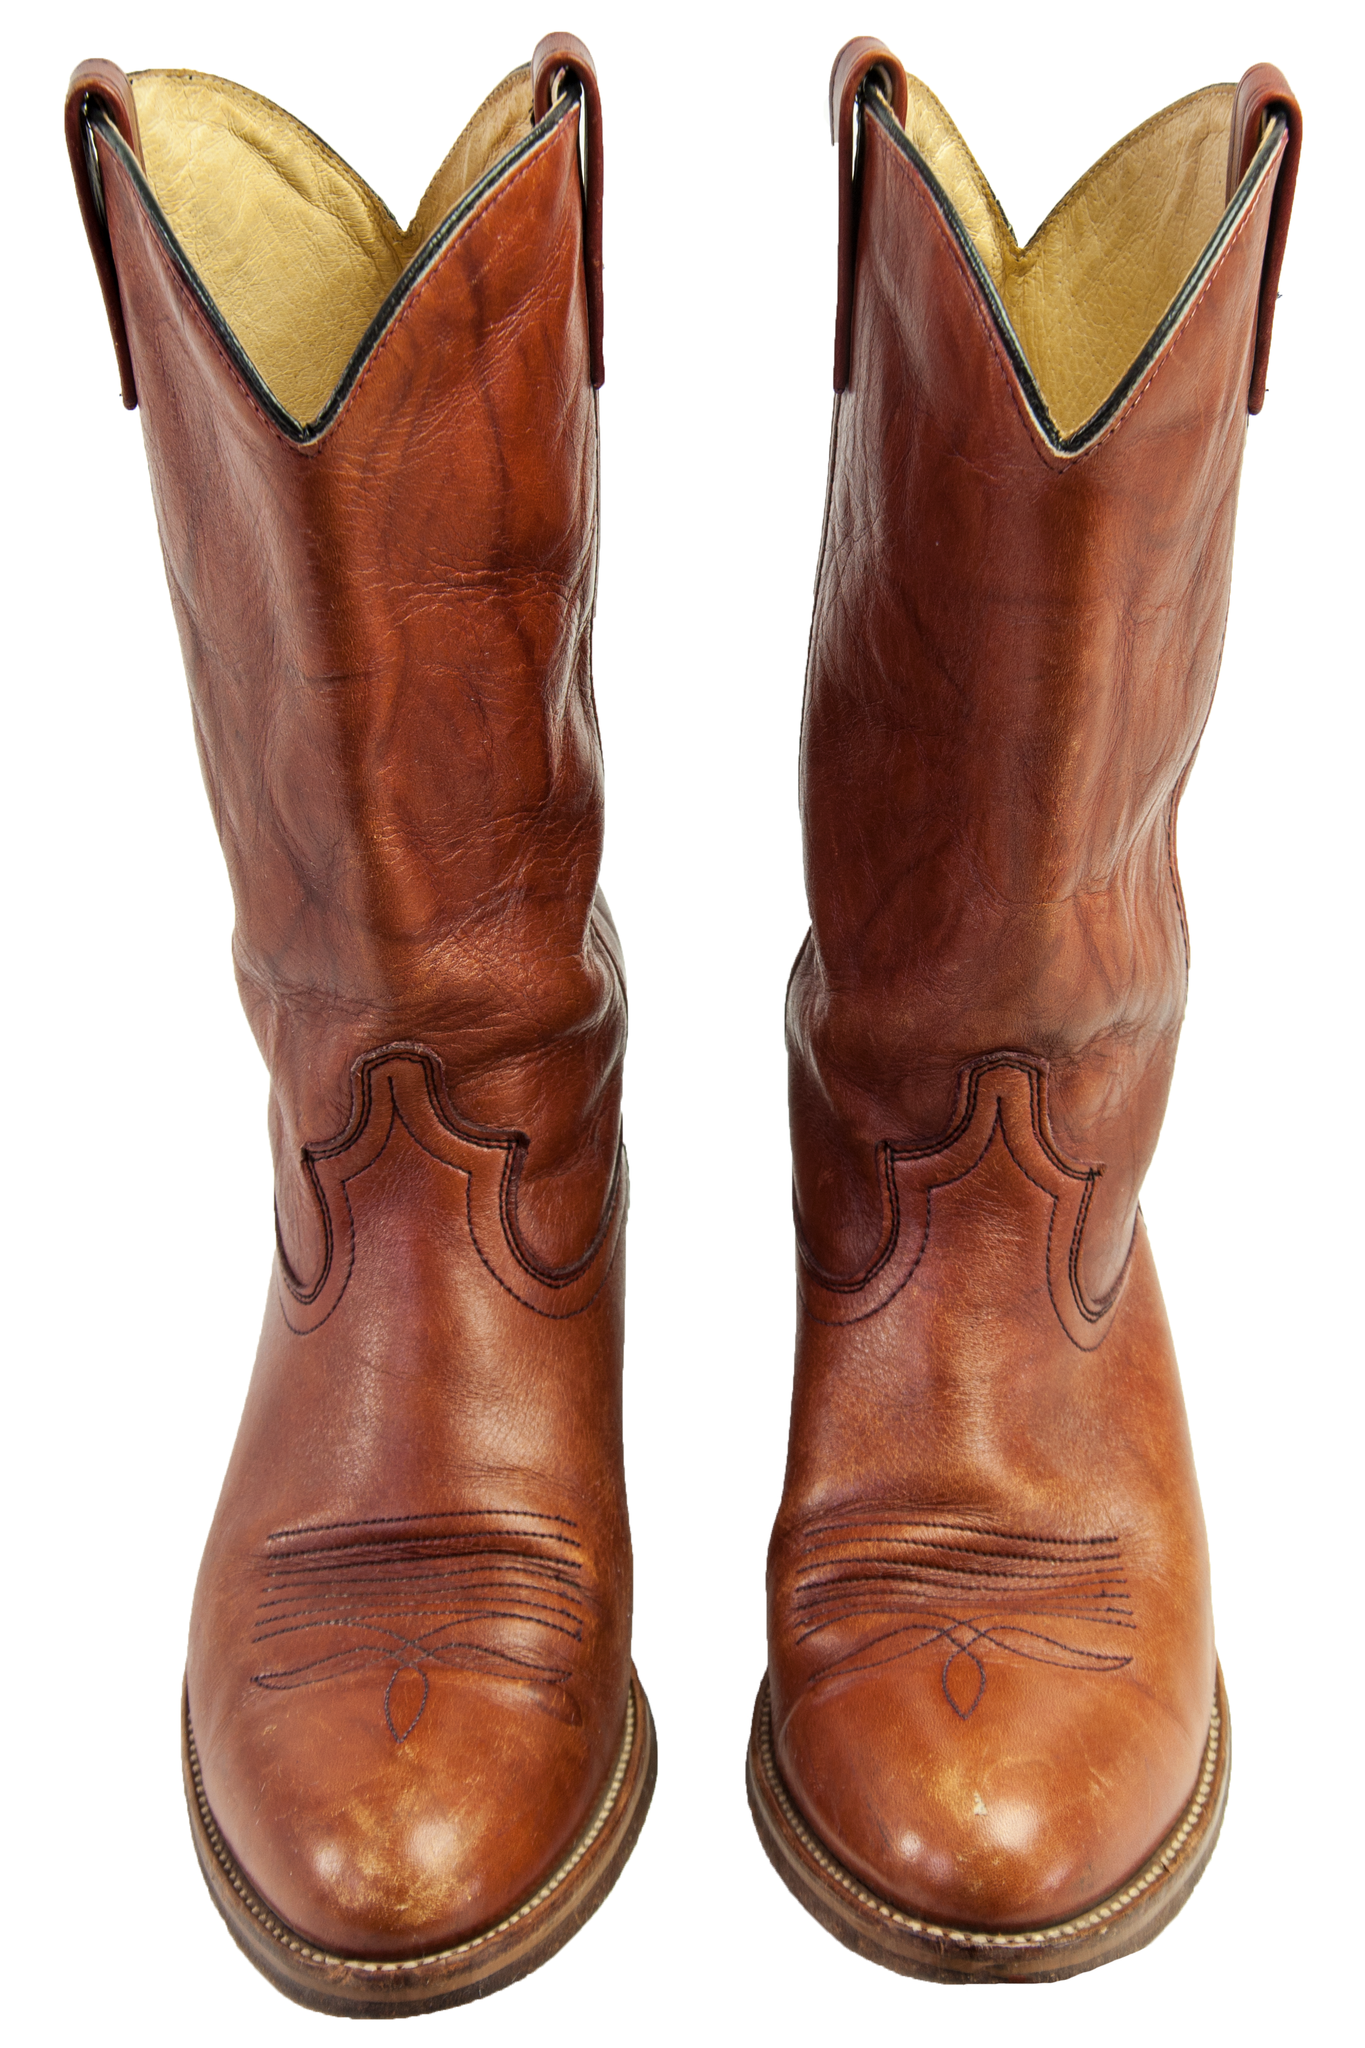 Cowboy Boots Png (108+ images in Collection) Page 2.